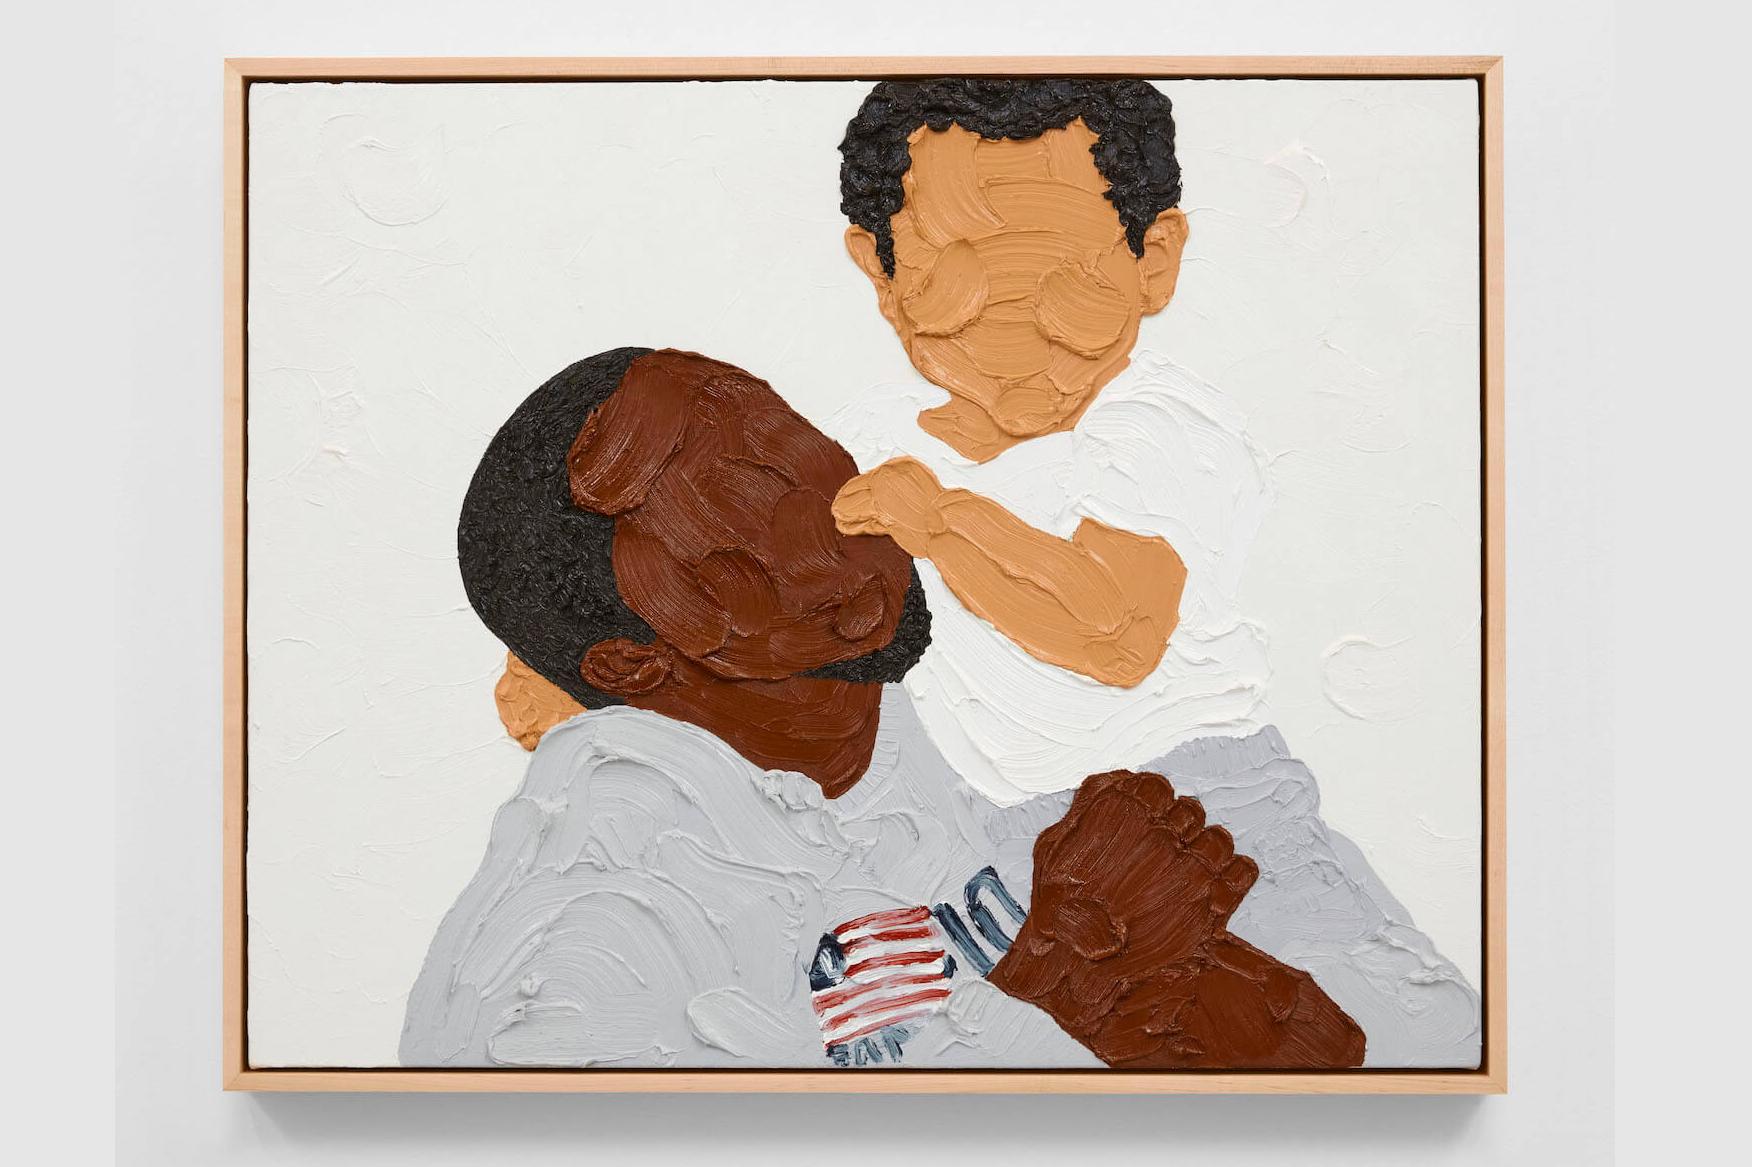 A portrait of a featureless man holding a featureless toddler, both rendered in generous swaths of paint. The man has black hair, a small black beard, and rich brown skin. The child has black hair and golden brown skin. The man wears a grey sweatshirt with a US flag, the child wears a white t-shirt. The man's face is angled up as though he's looking at the child, and the child is facing out toward the viewer.